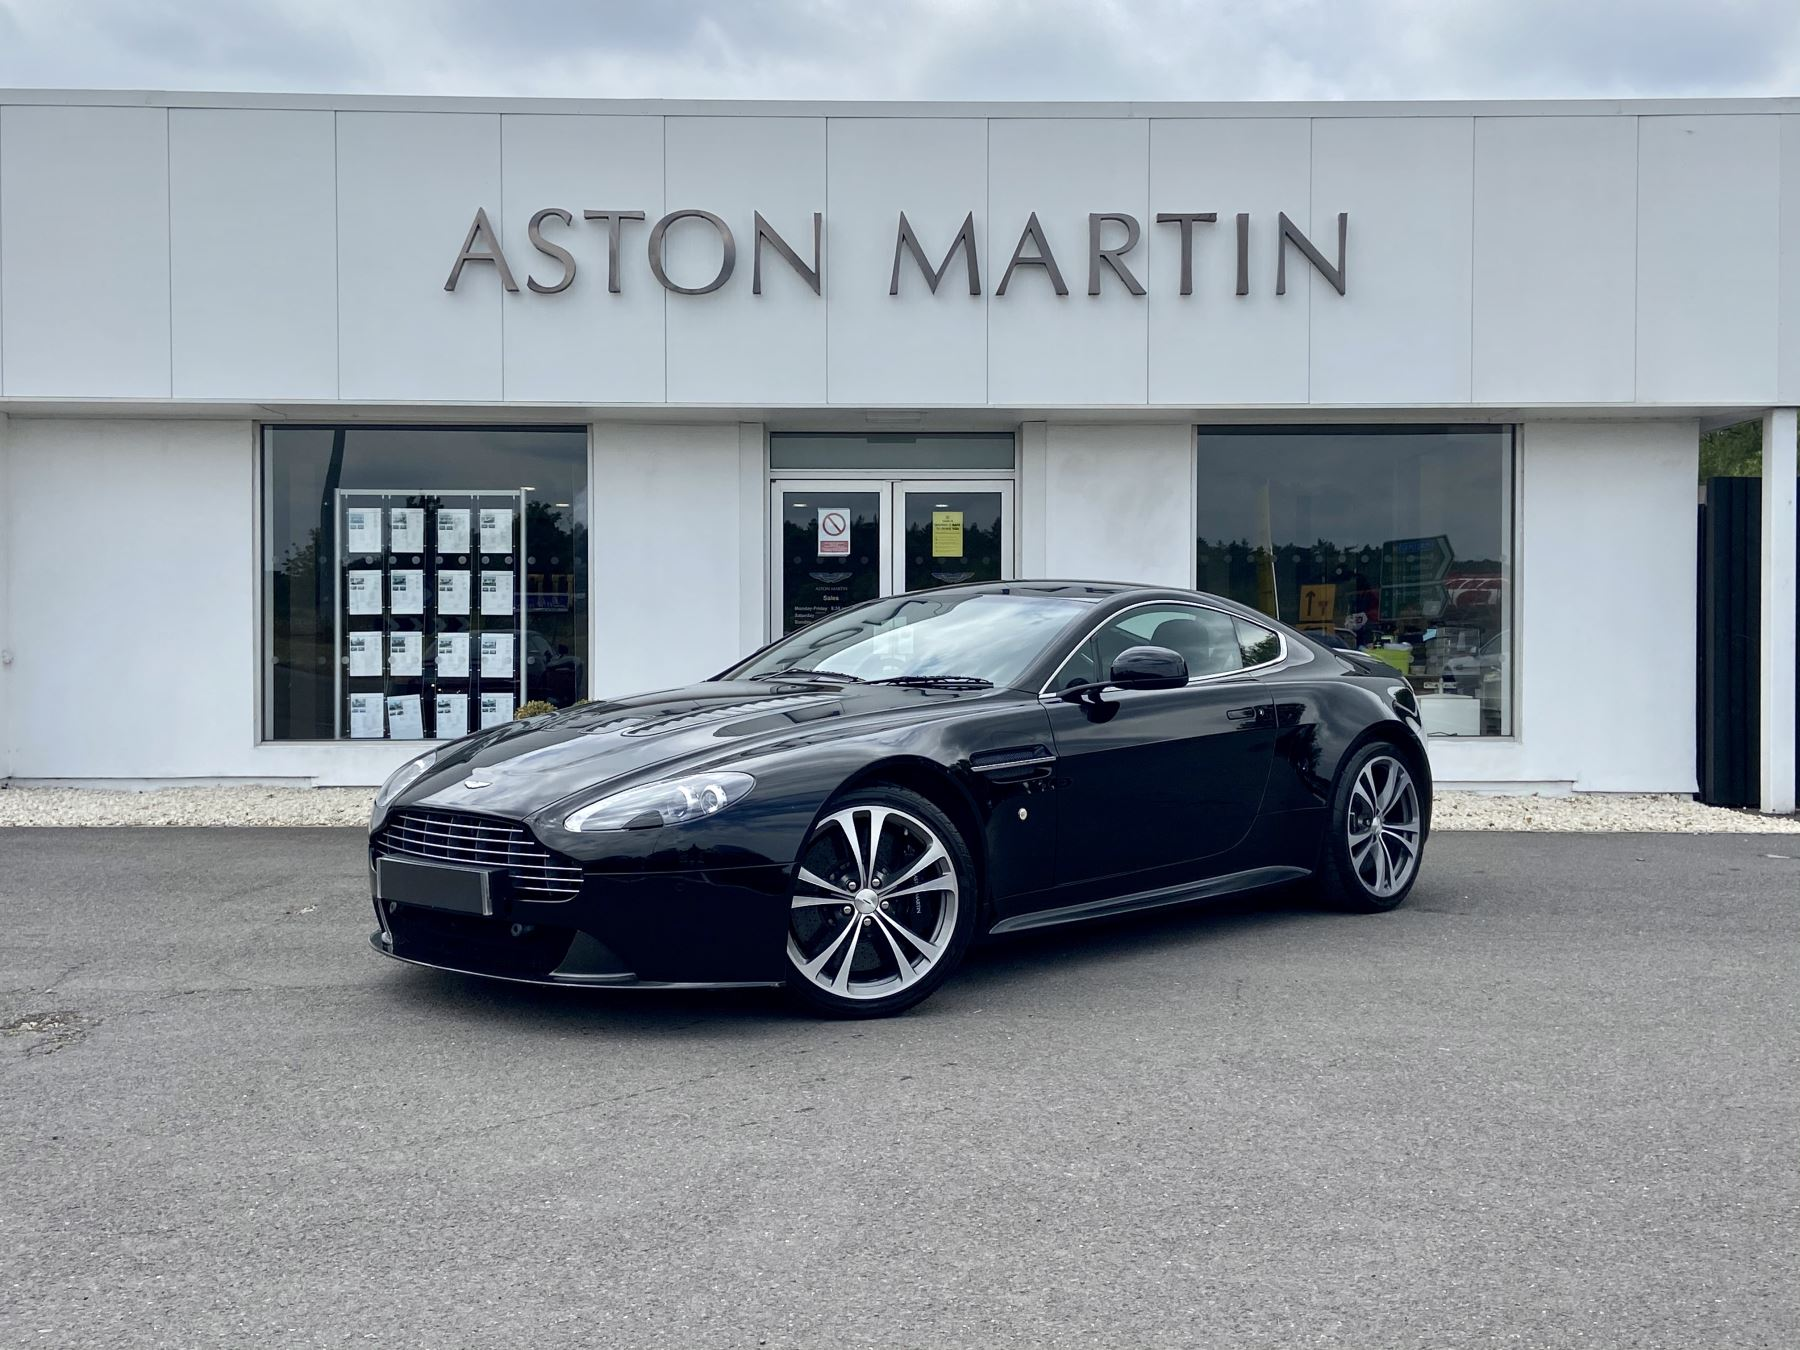 Aston Martin V12 Vantage 2dr 5.9 3 door Coupe (2009)